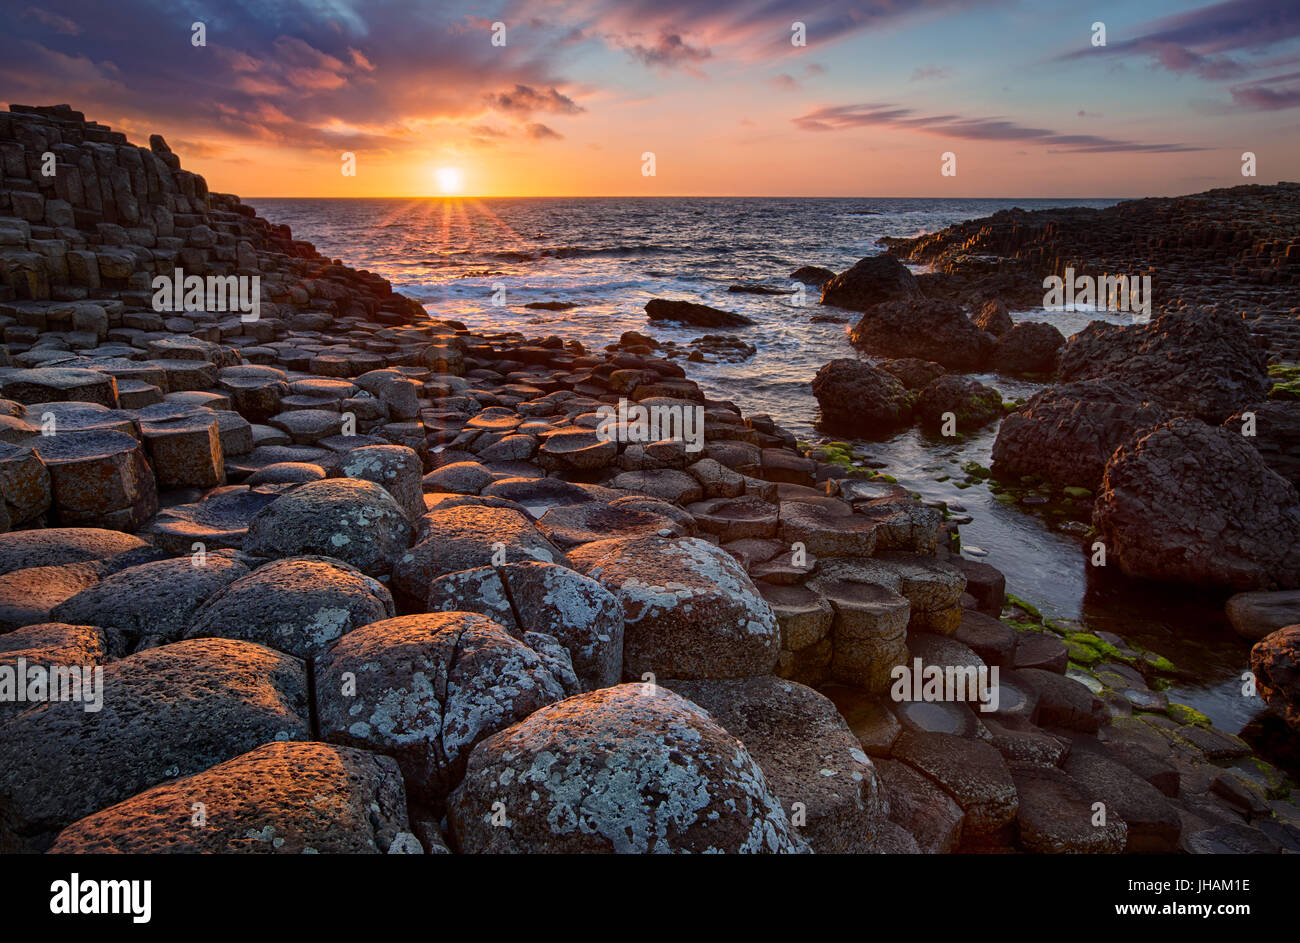 sunset over basalt columns Giant's Causeway, County Antrim, Northern Ireland - Stock Image